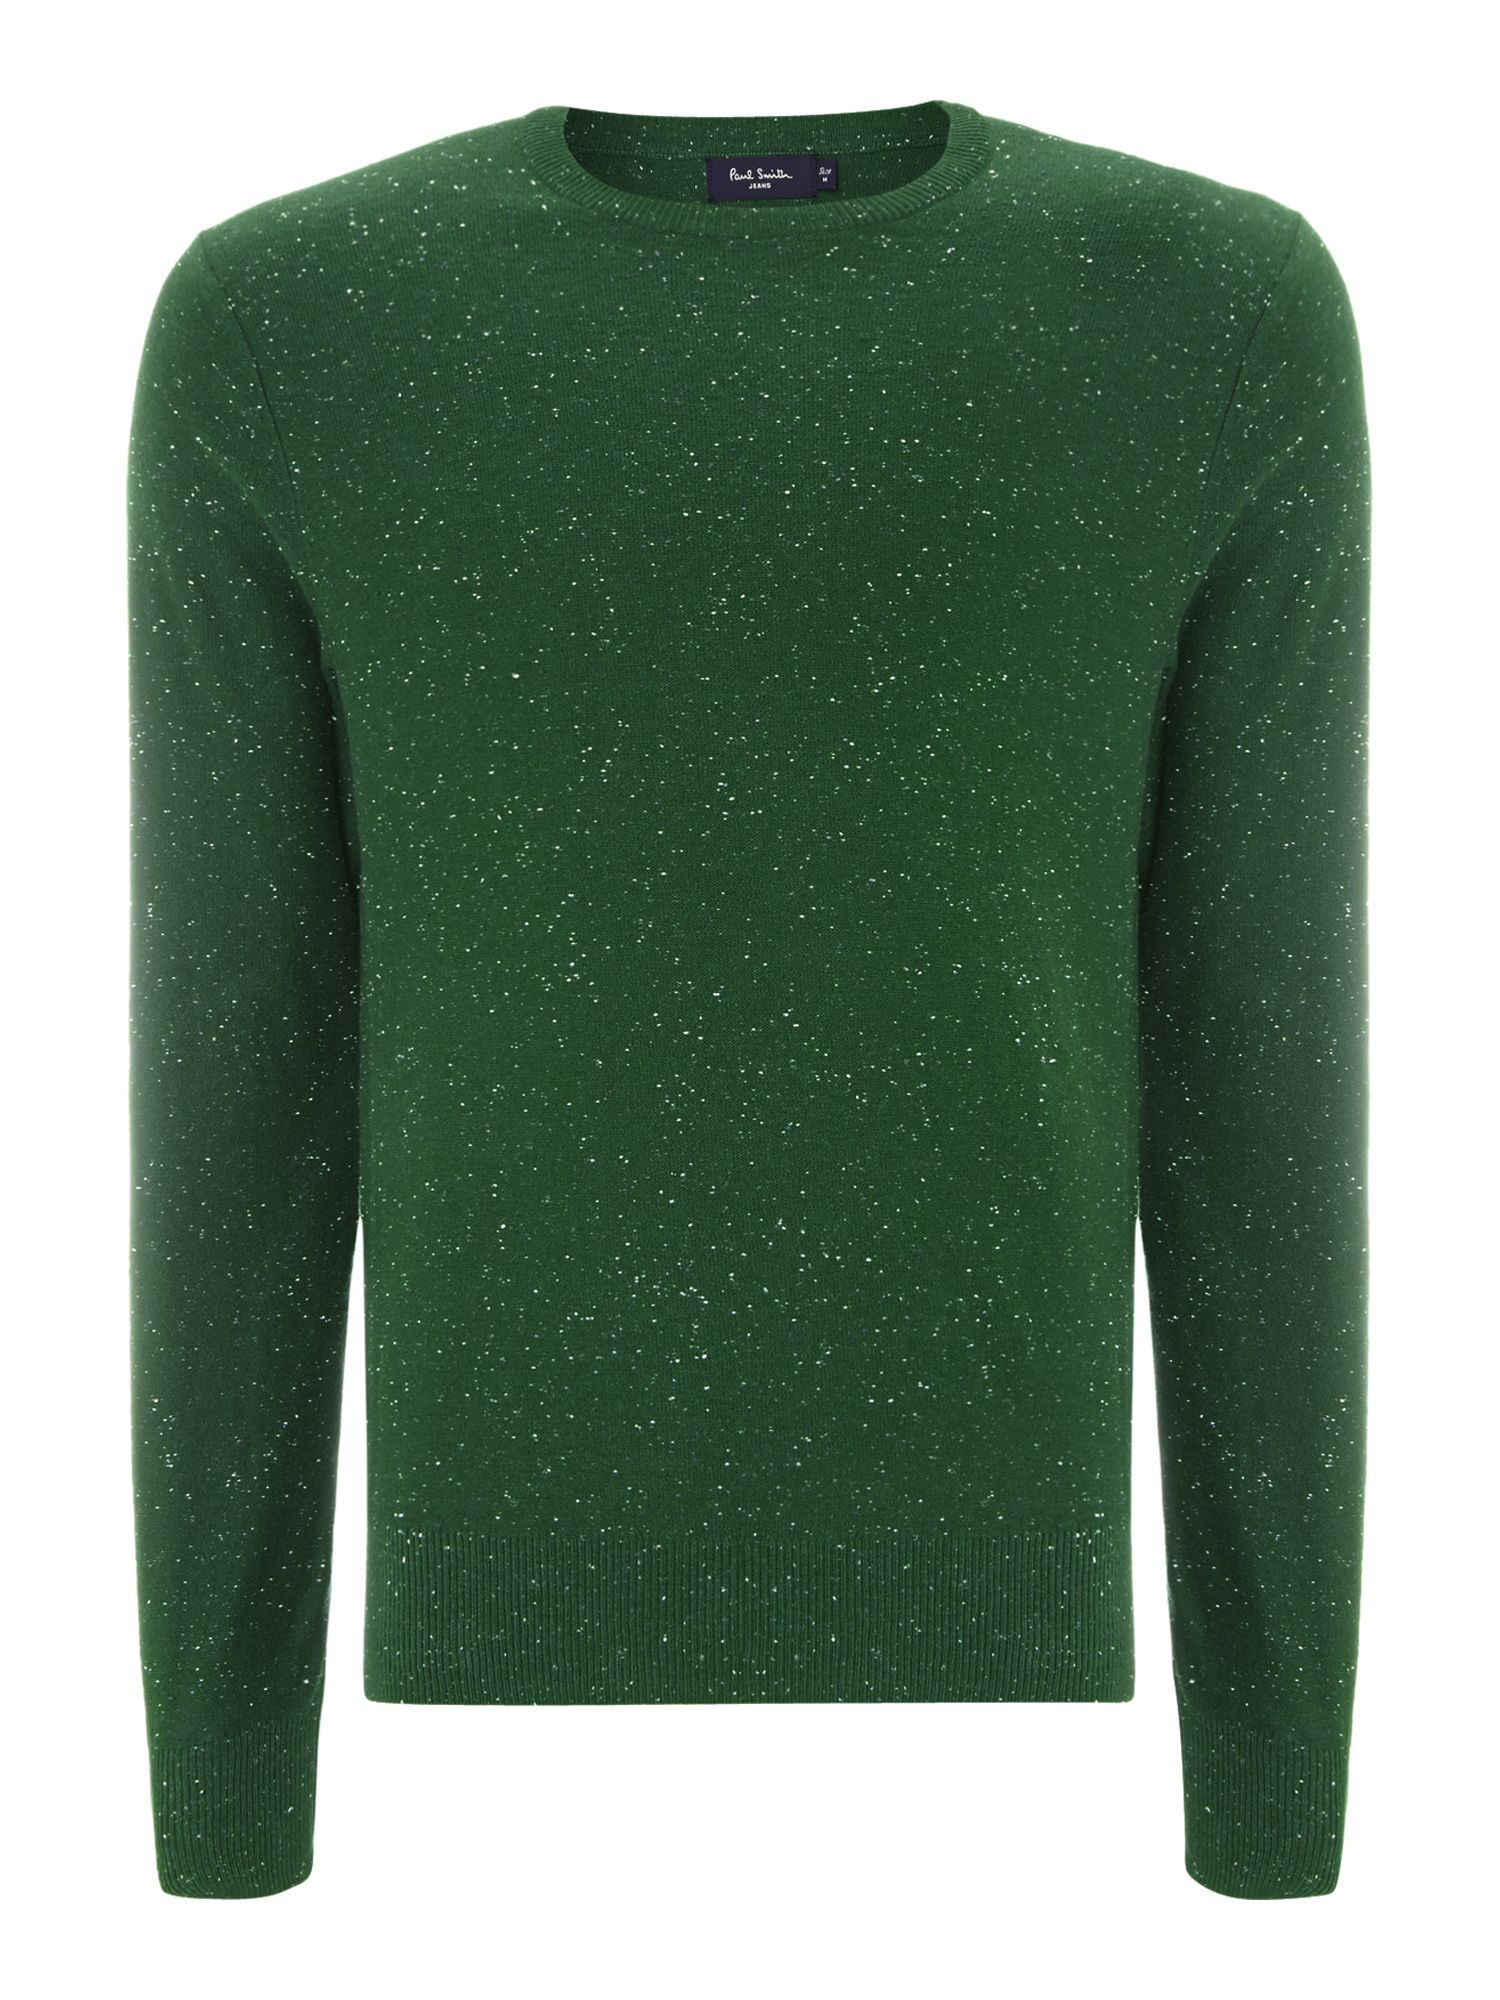 Speckled crew neck knitwear